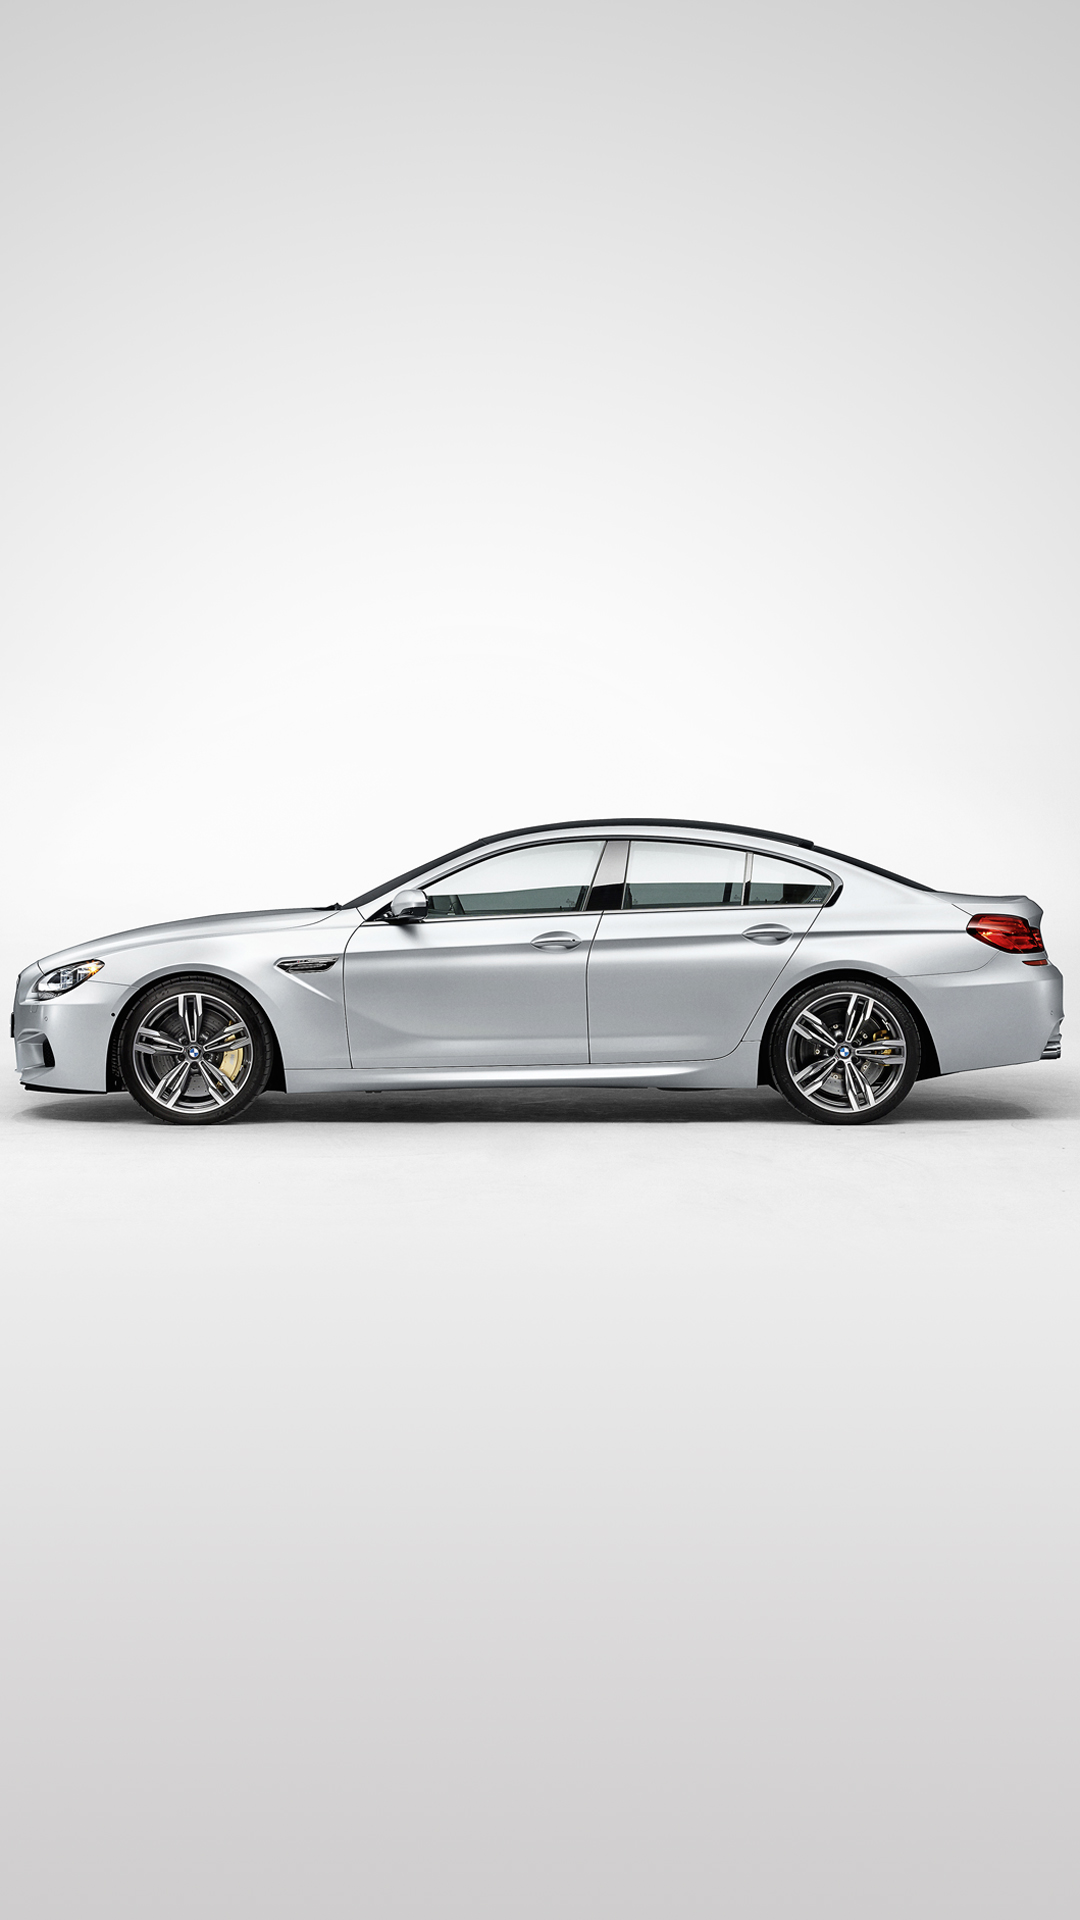 2013 BMW M6 gran coupe